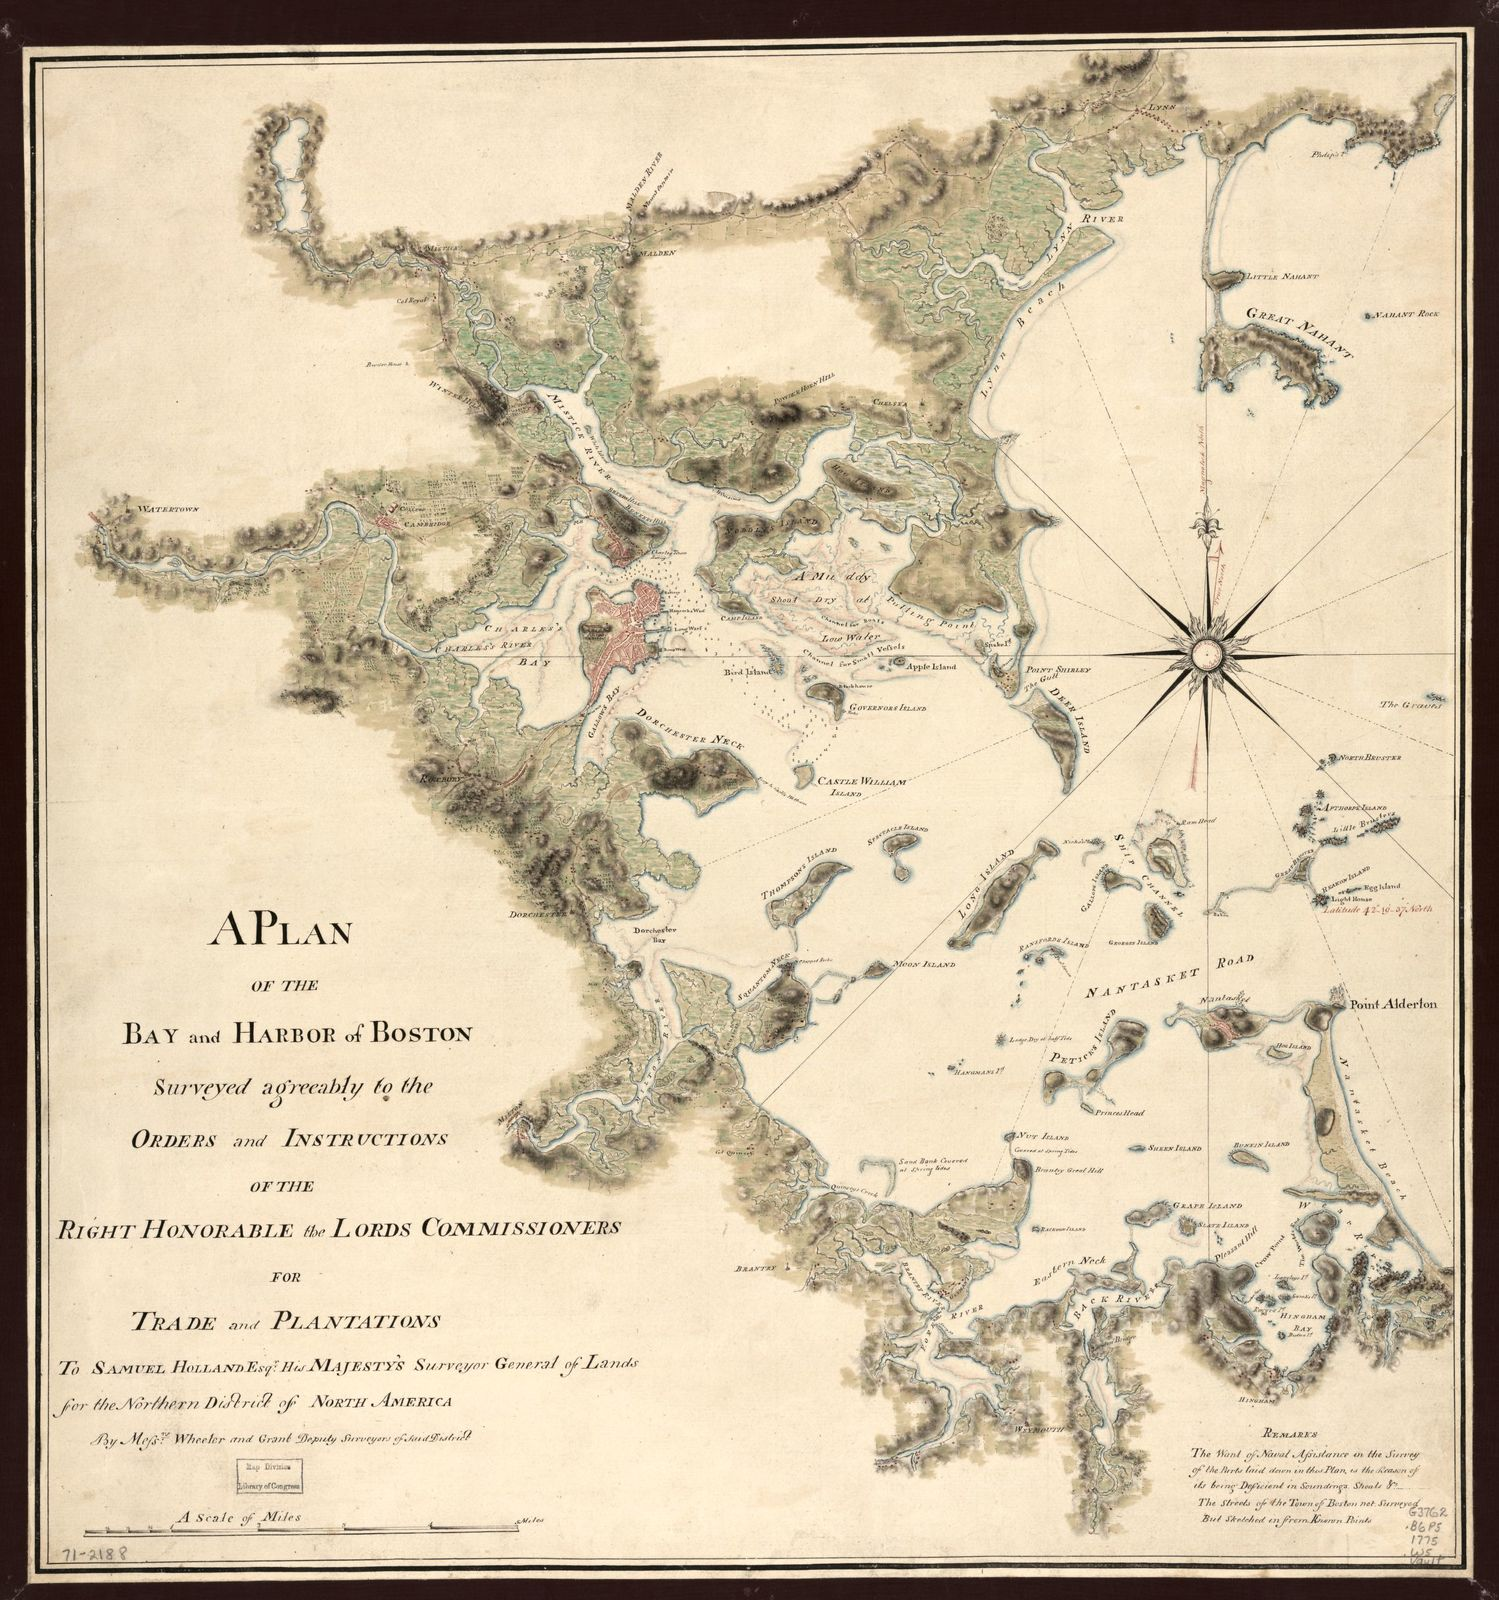 A plan of the bay and harbor of Boston, surveyed agreeably to the orders and instructions of the Right Honorable the Lords Commissioners for Trade and Plantations, to Samuel Holland, Esqr., His Majesty's Surveyor General of Lands for the Northern District of North America,